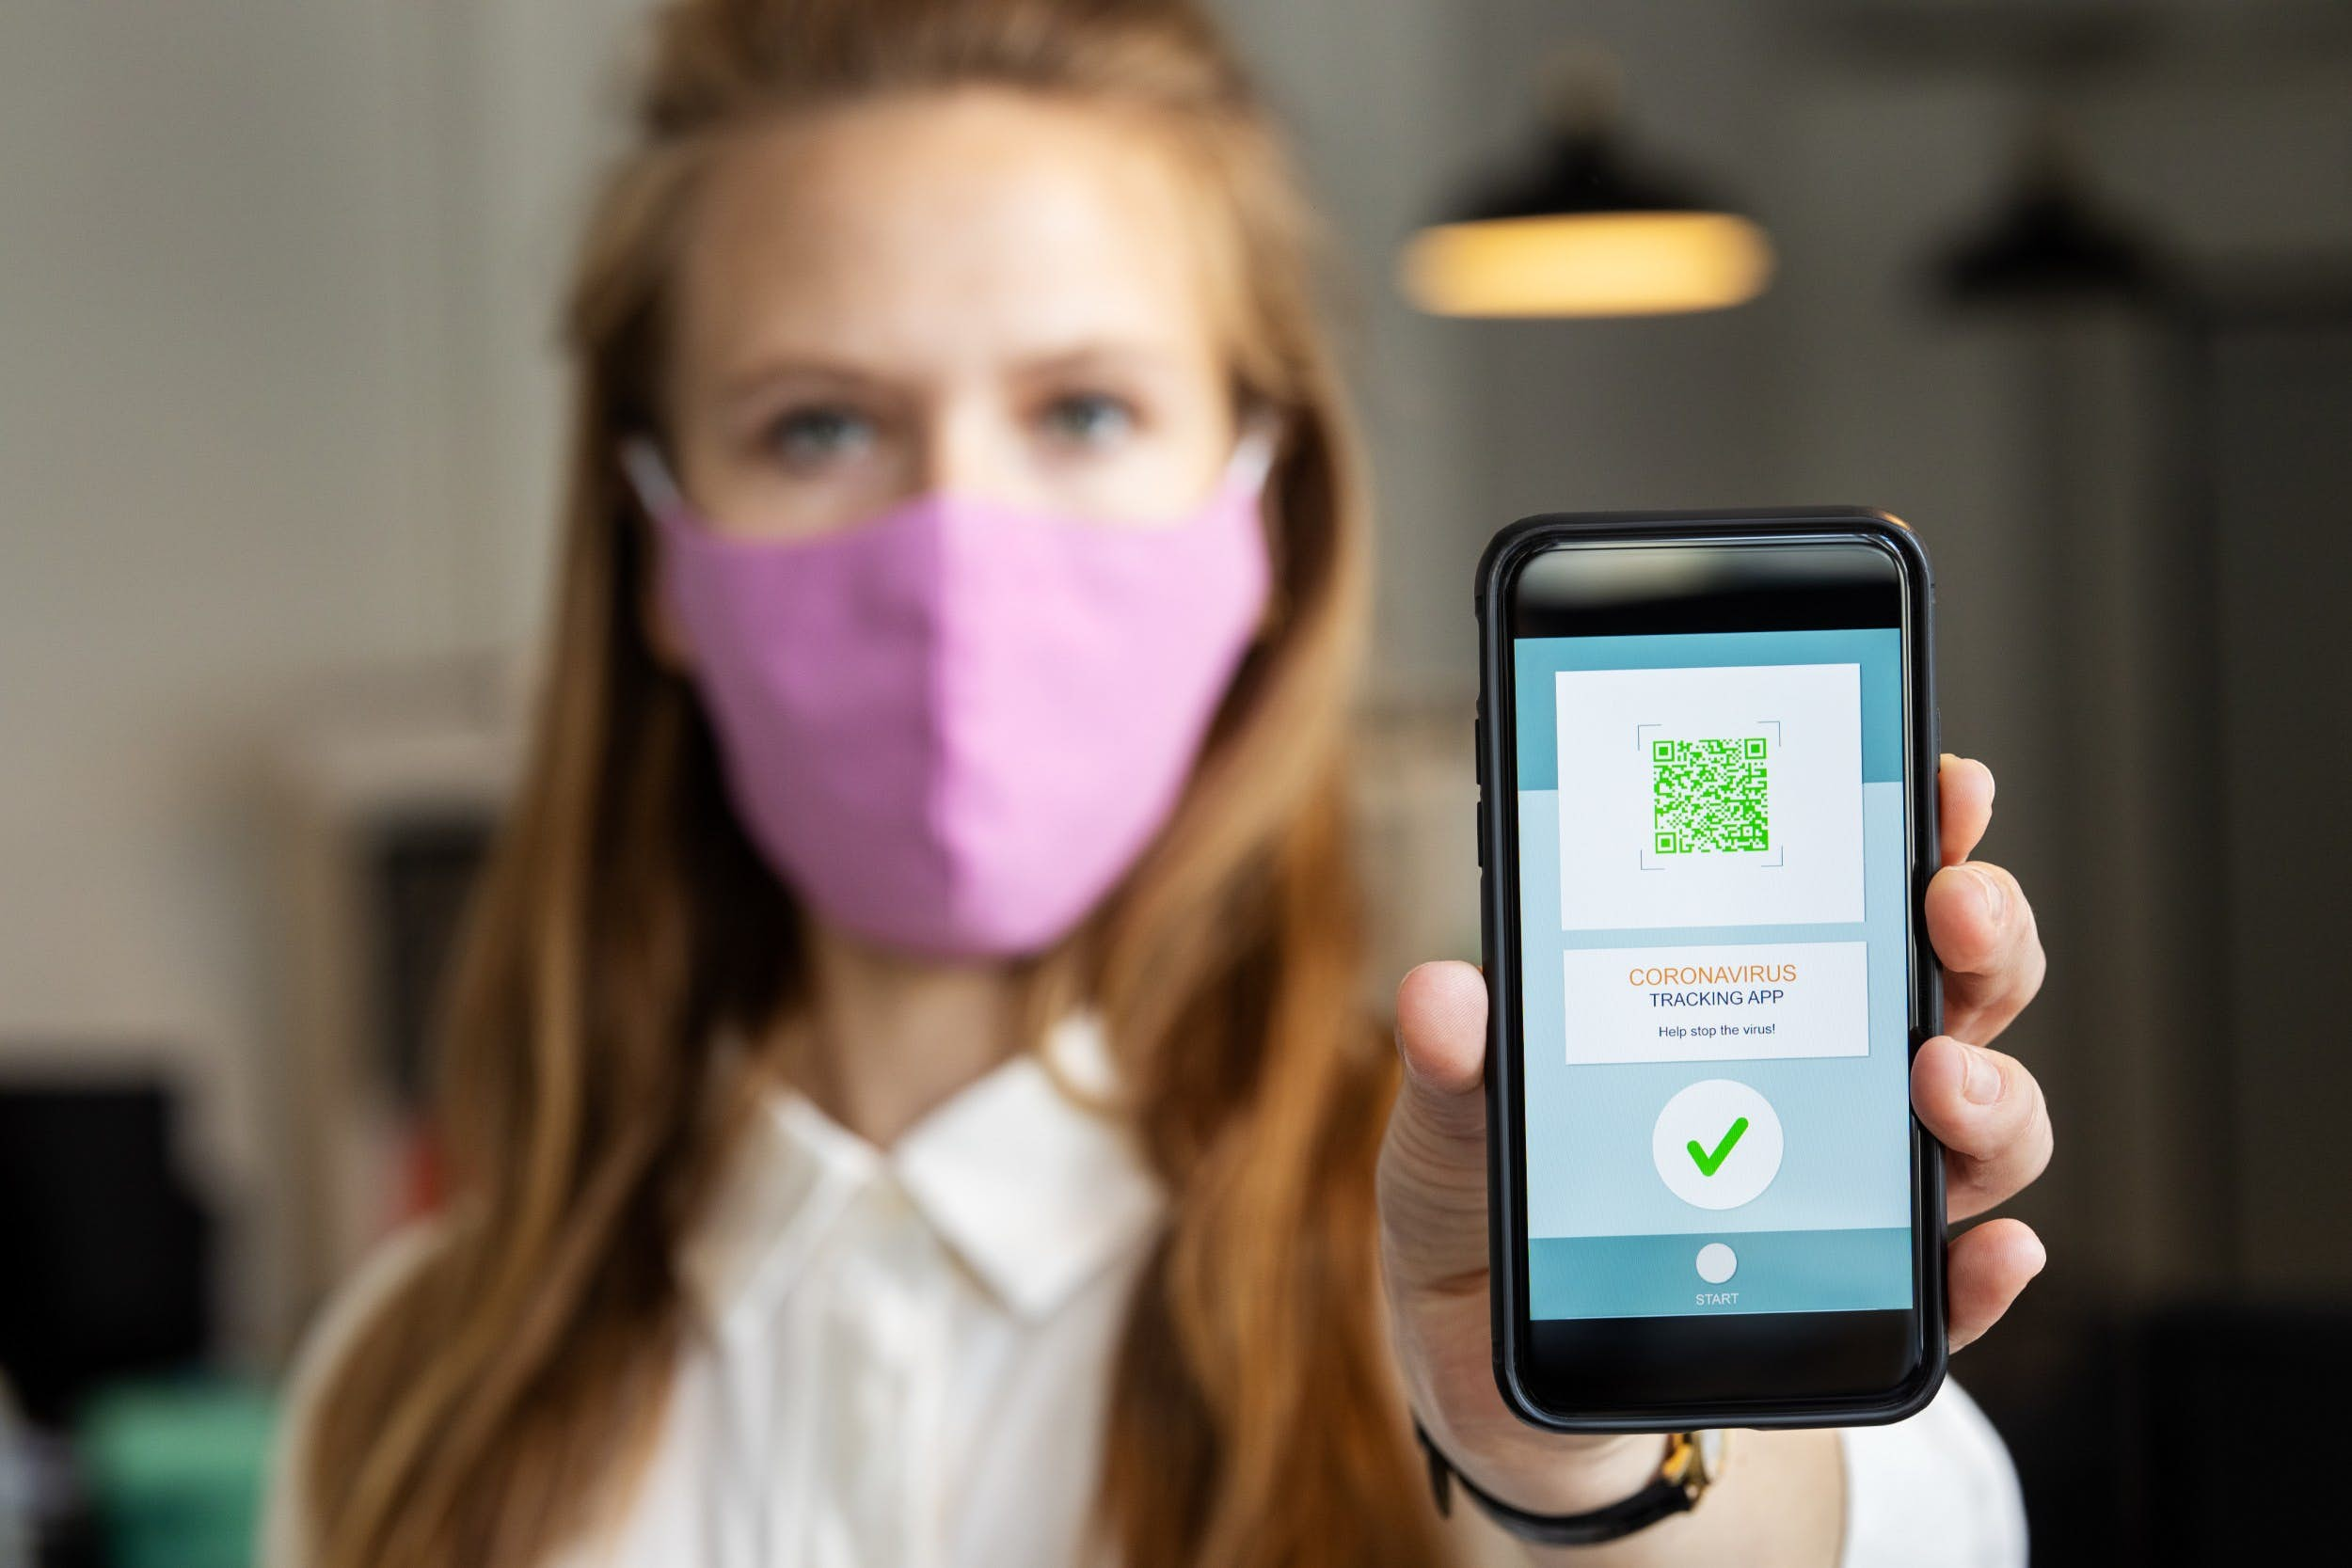 Could this new digital health pass help kickstart international travel? - Lonely Planet